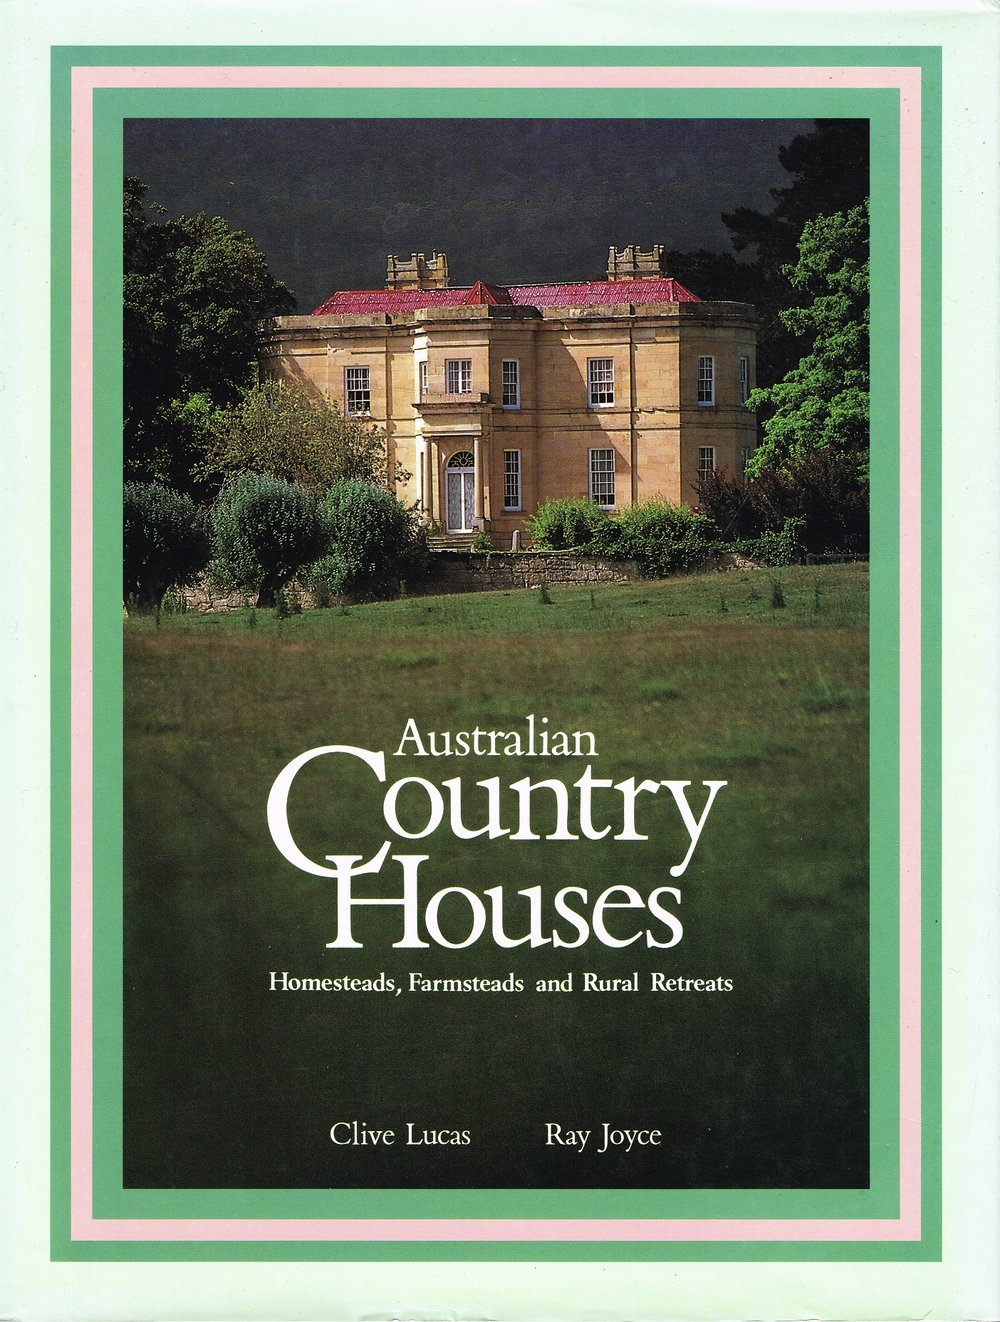 Australian Country Houses : Homesteads, farmsteads, and rural retreats Clive Lucas and Ray Joyce